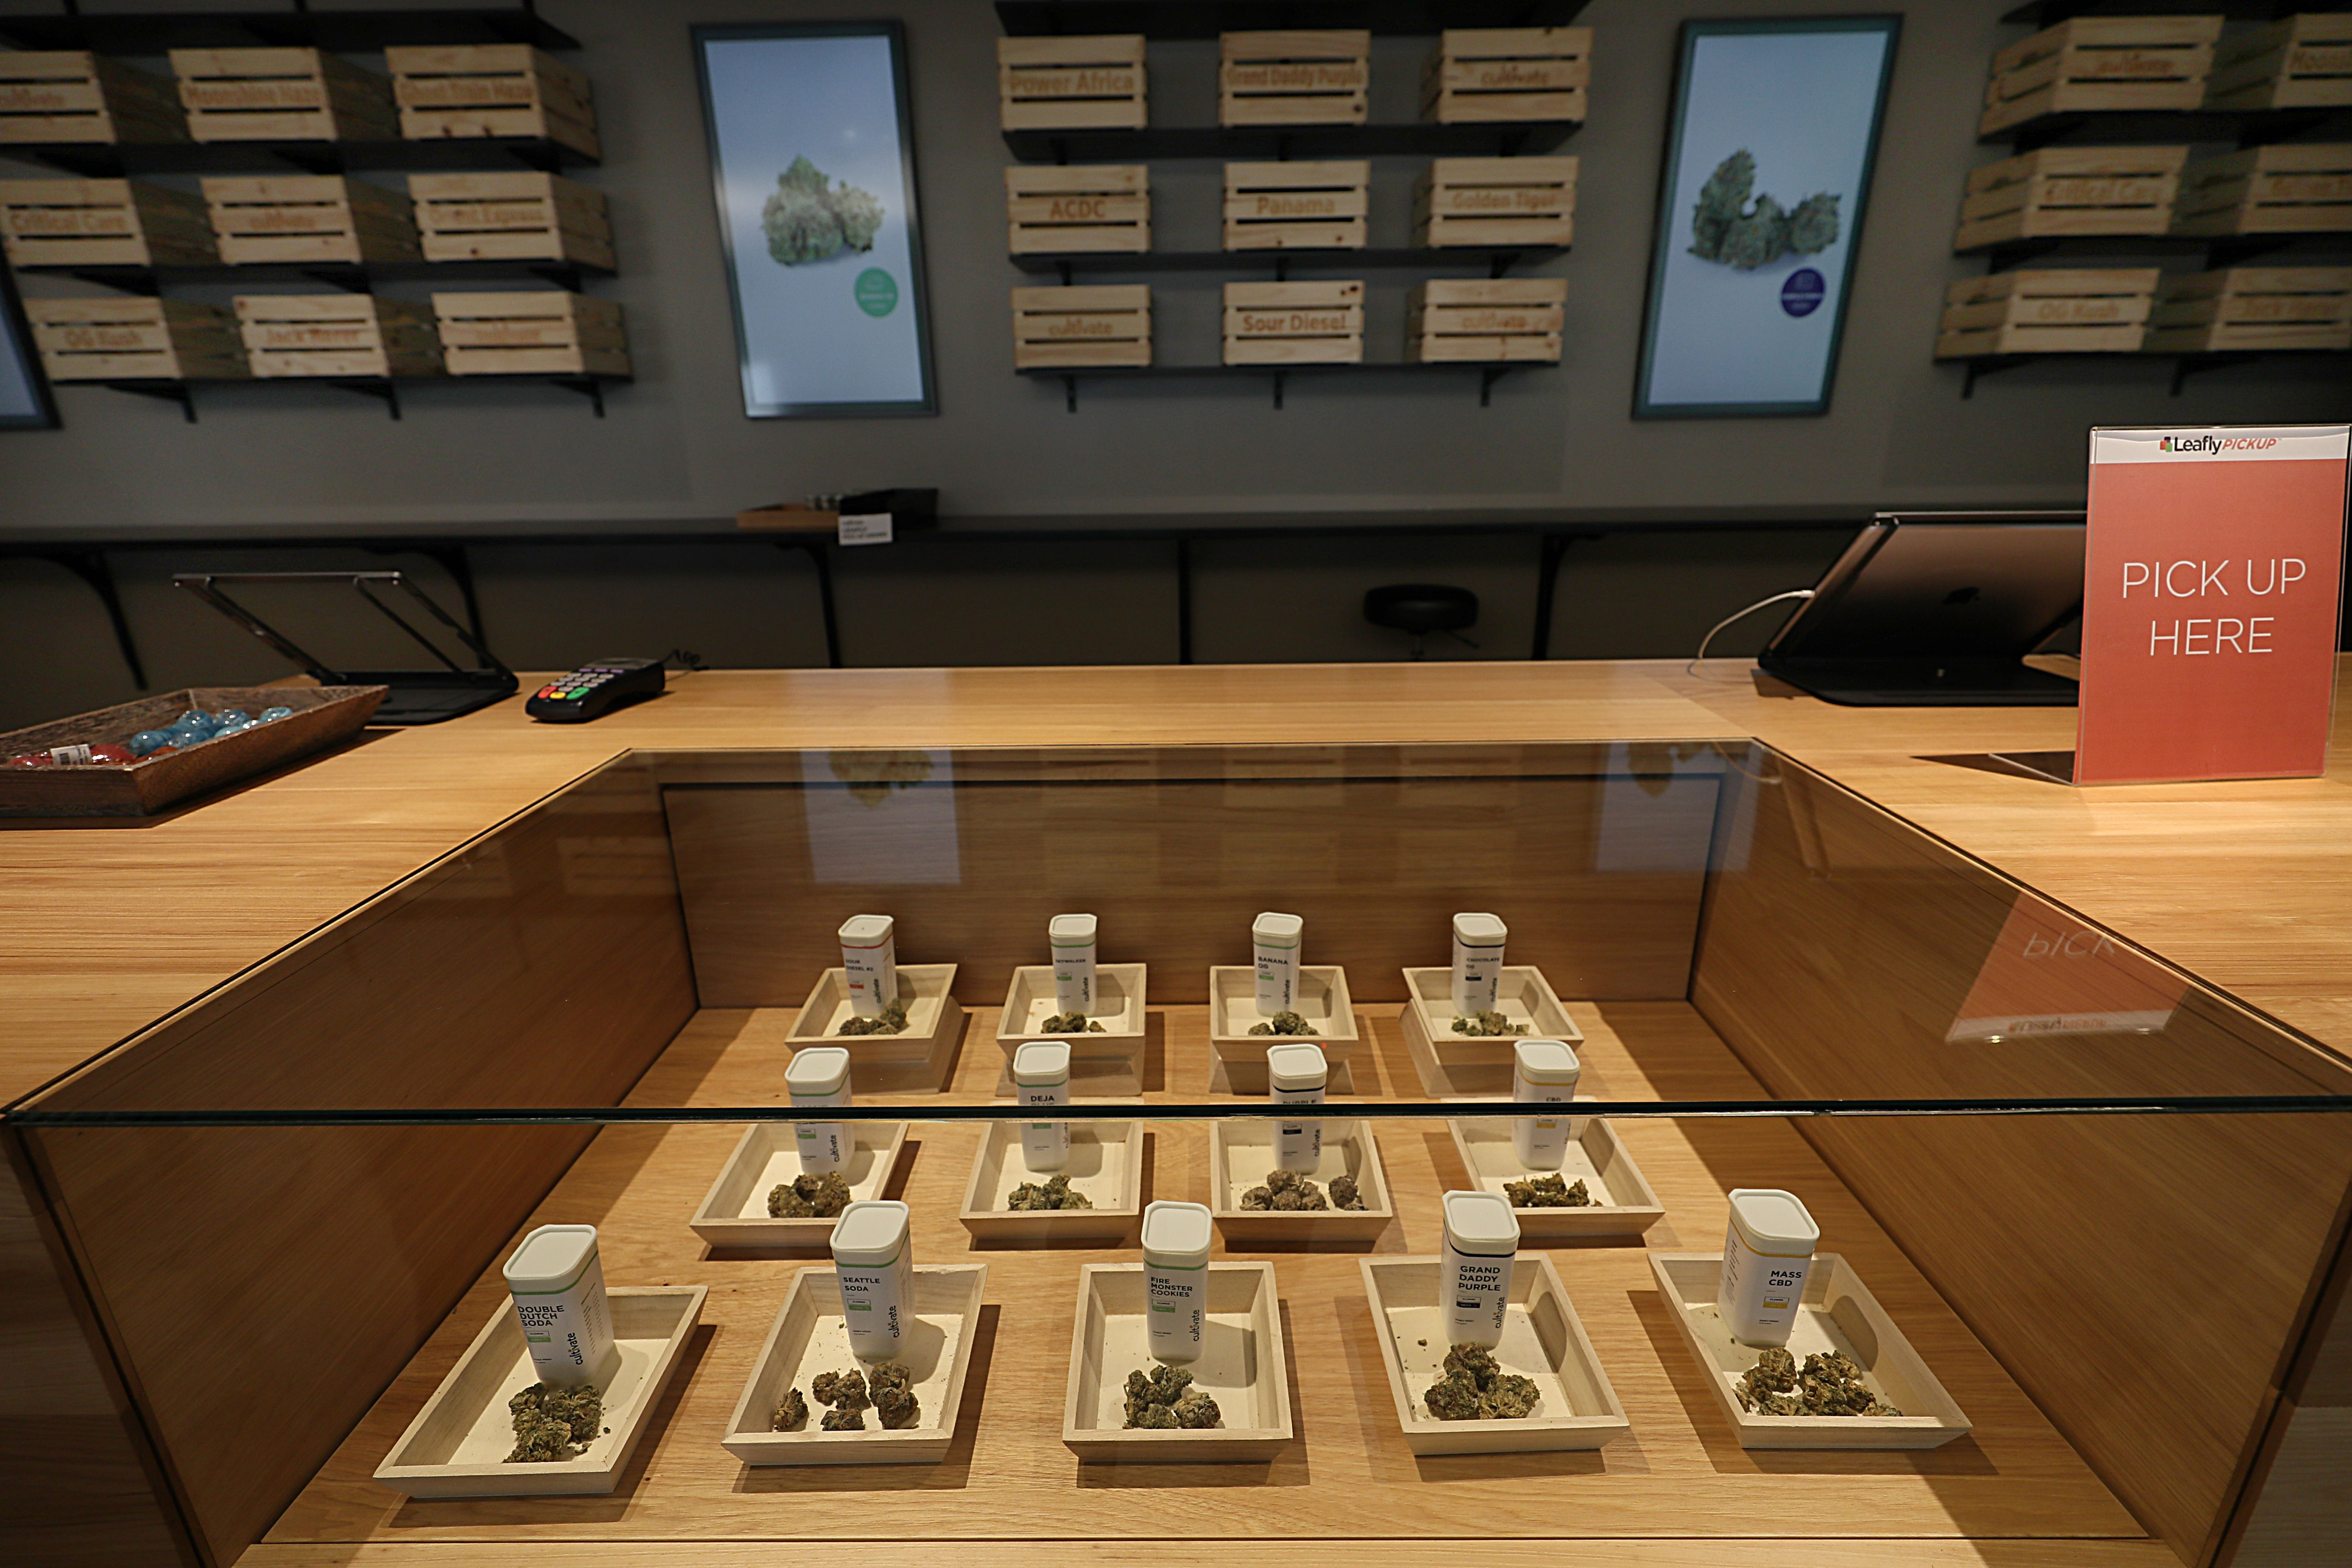 Take a look inside one of Massachusetts' first recreational